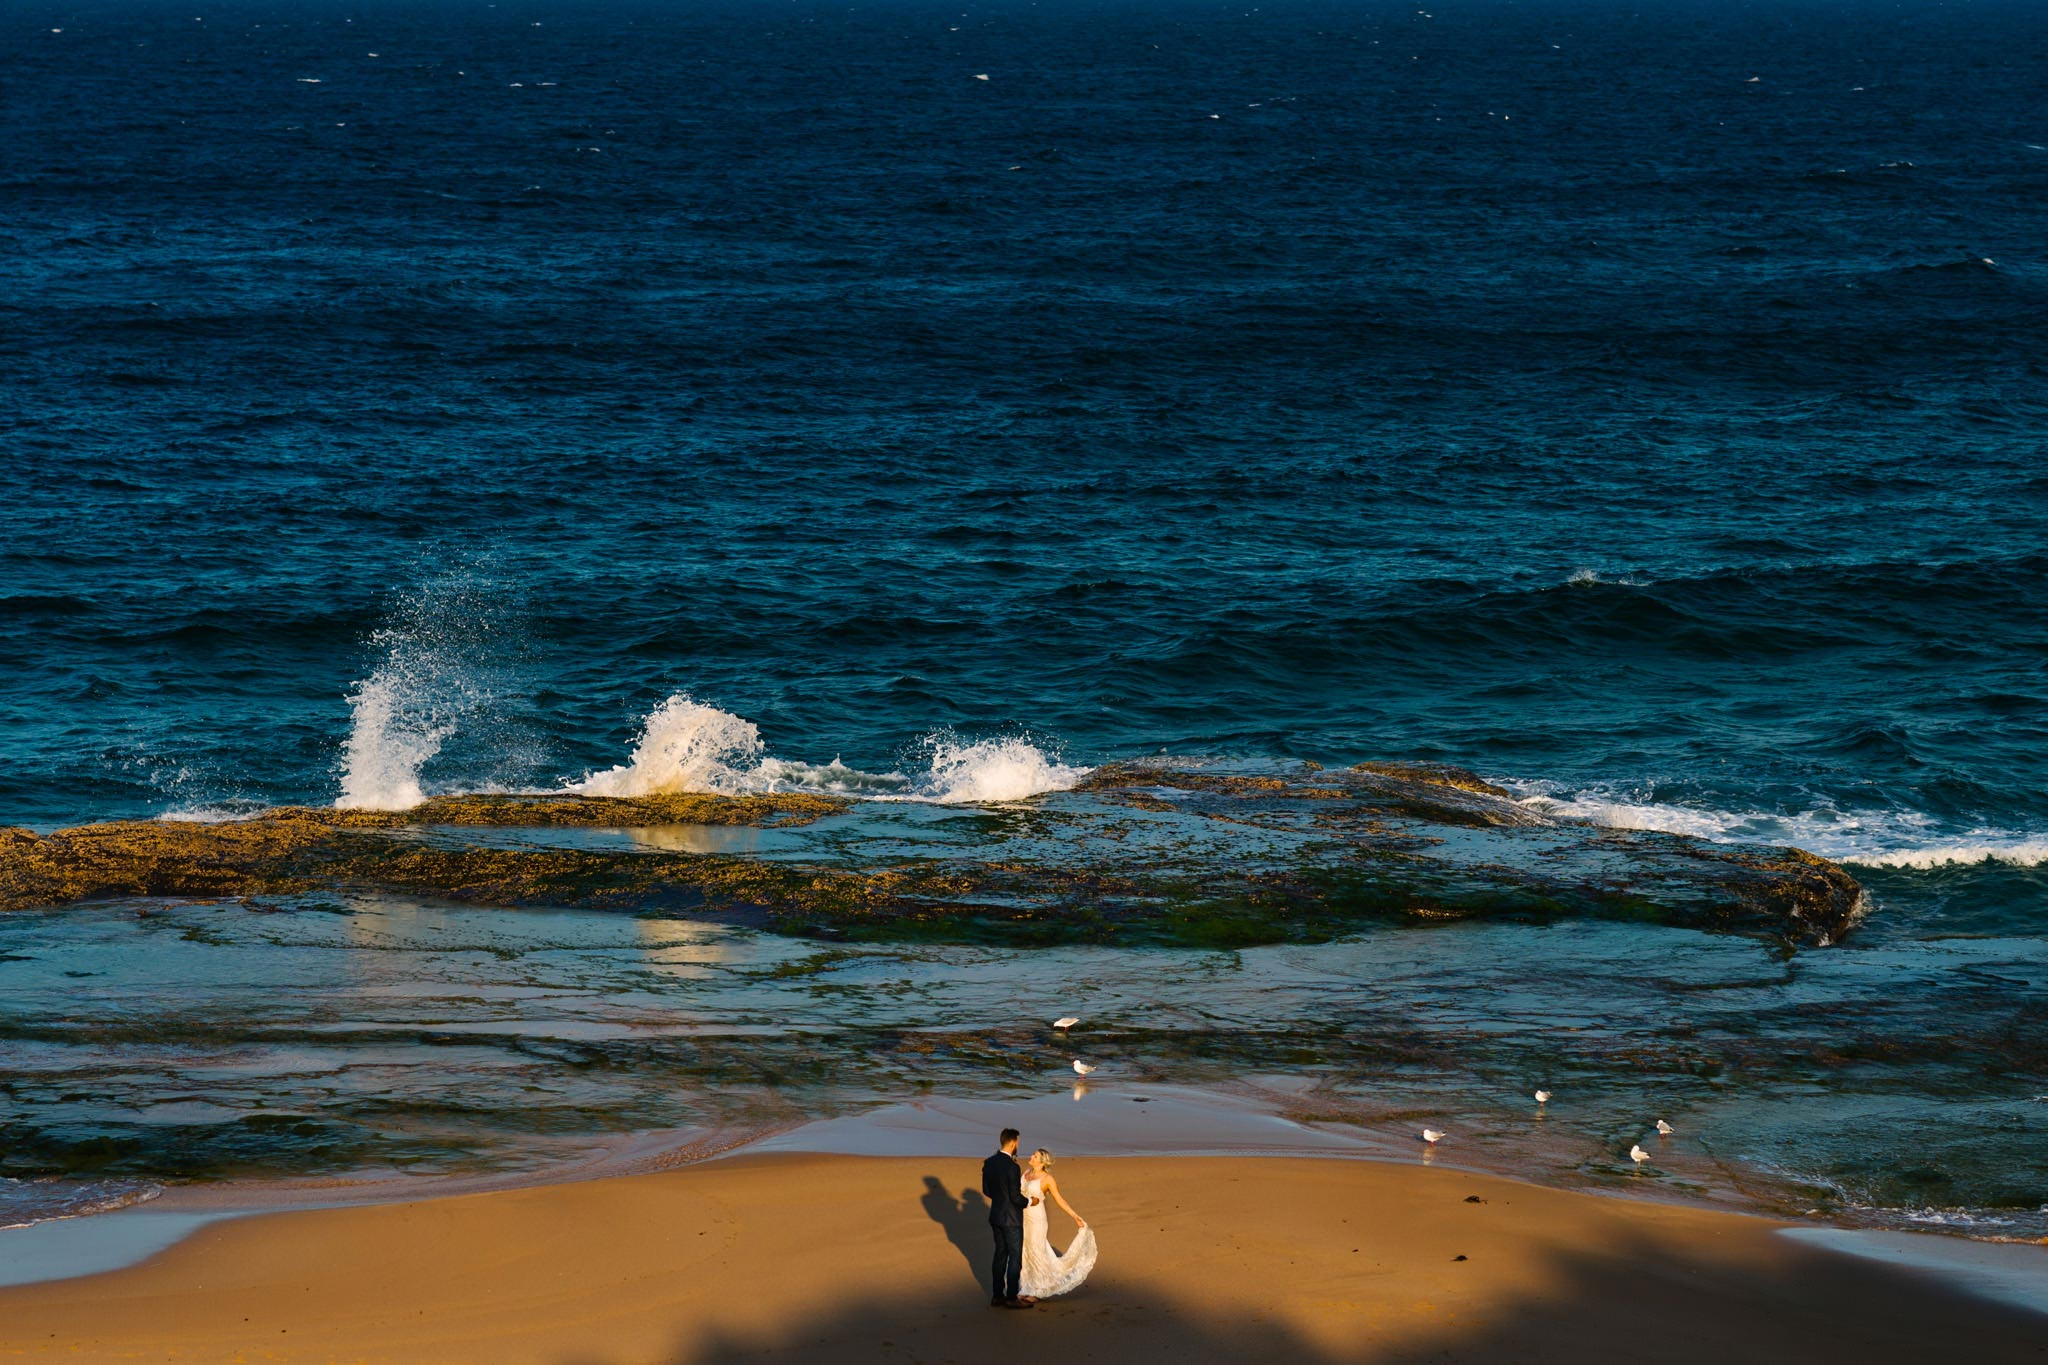 Bride and groom embracing on Turimetta beach in the Northern Beaches of Sydney